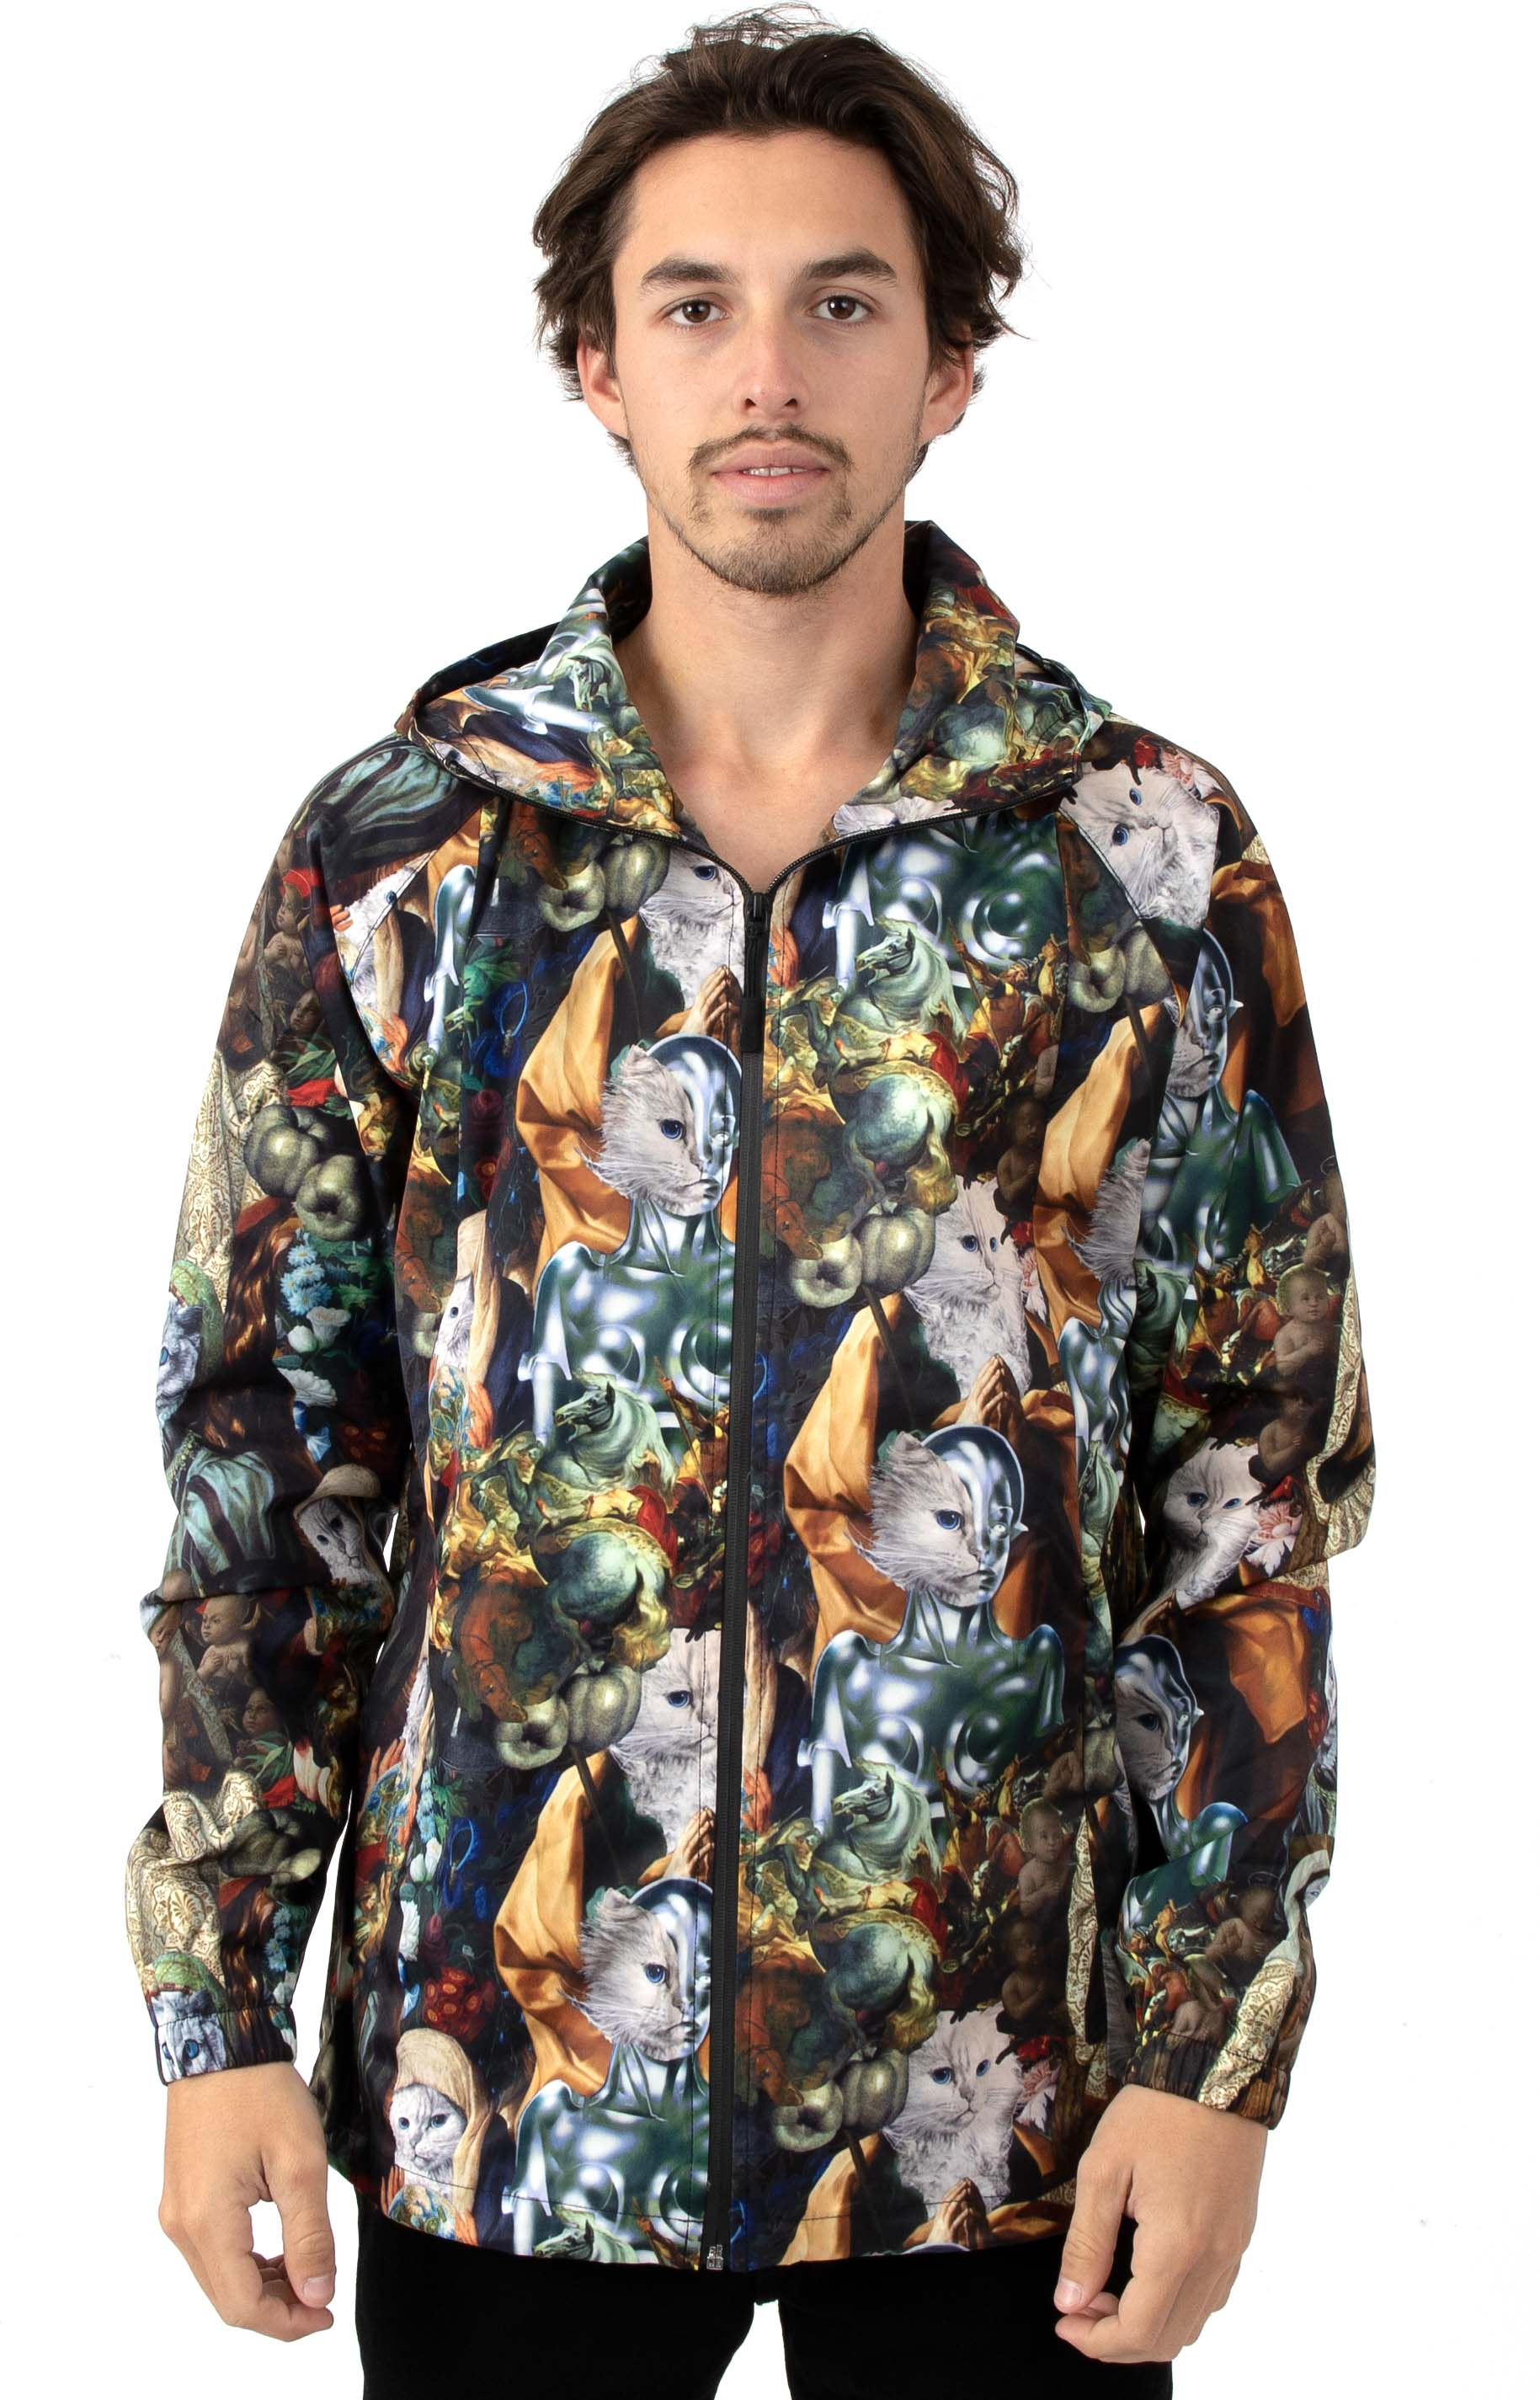 Nermaissance Hooded Anorak Jacket - Multi